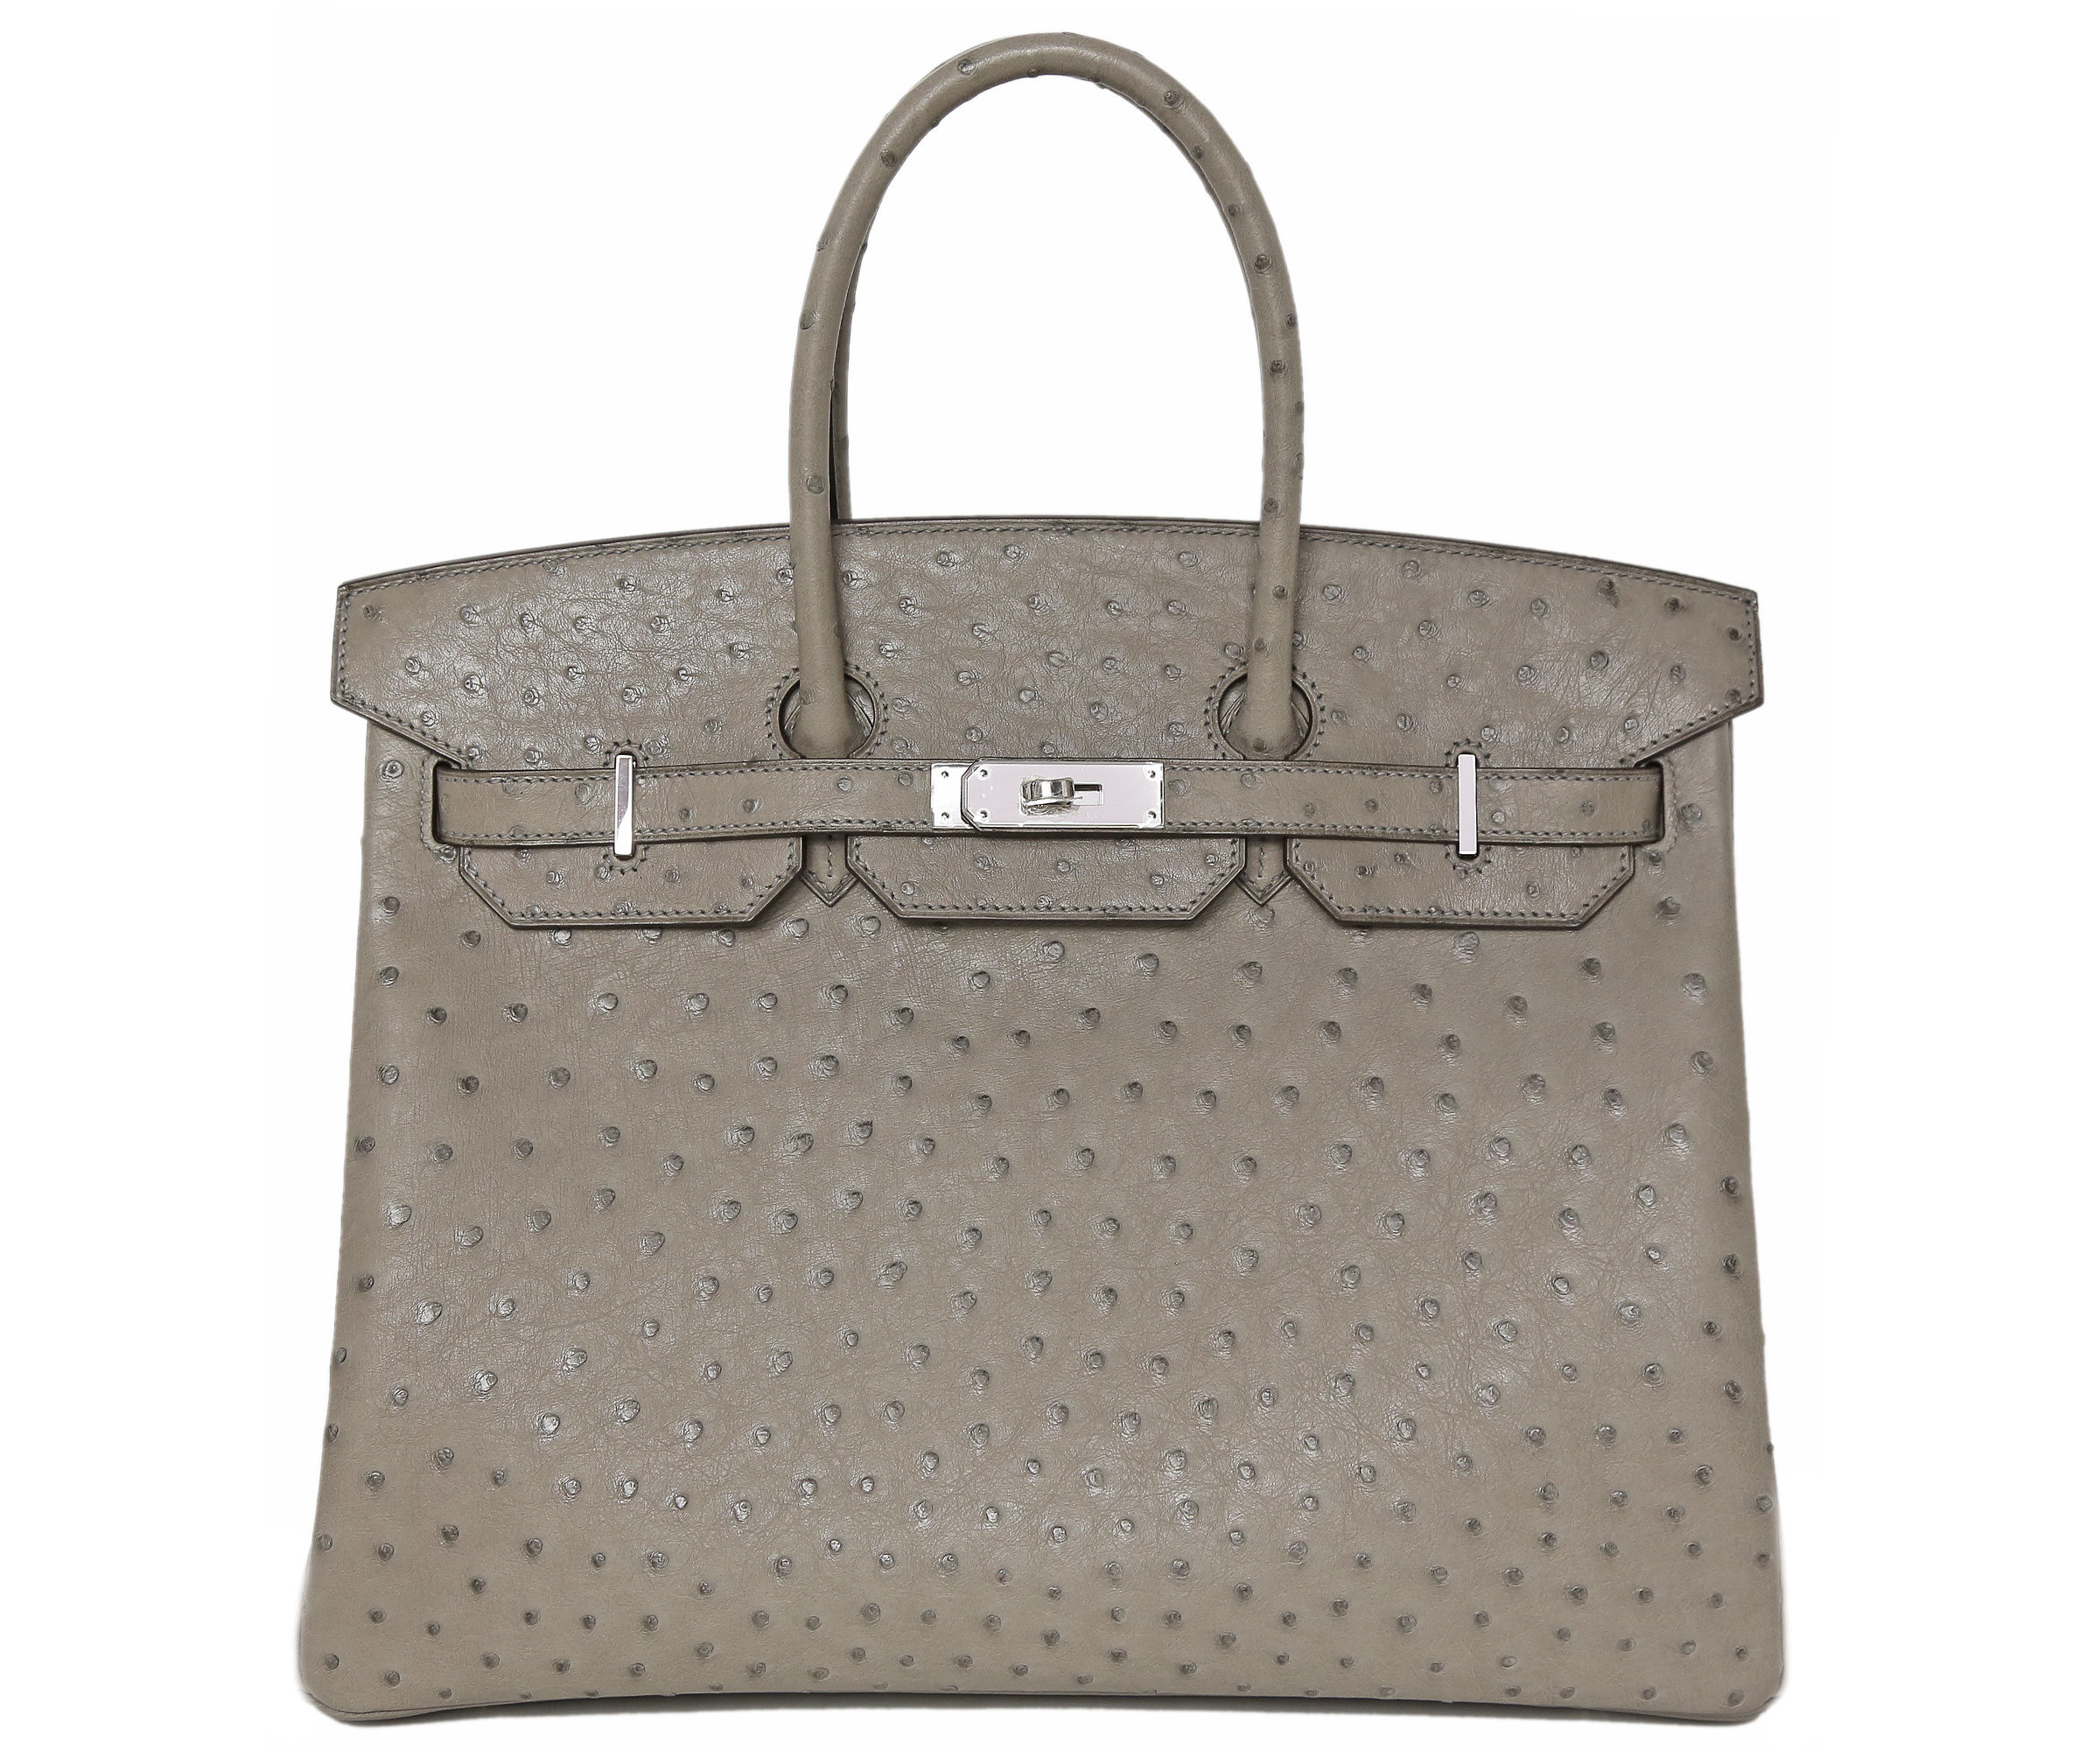 fake kelly - hermes birkin bag 35cm rouge vif ostrich palladium hardware ...